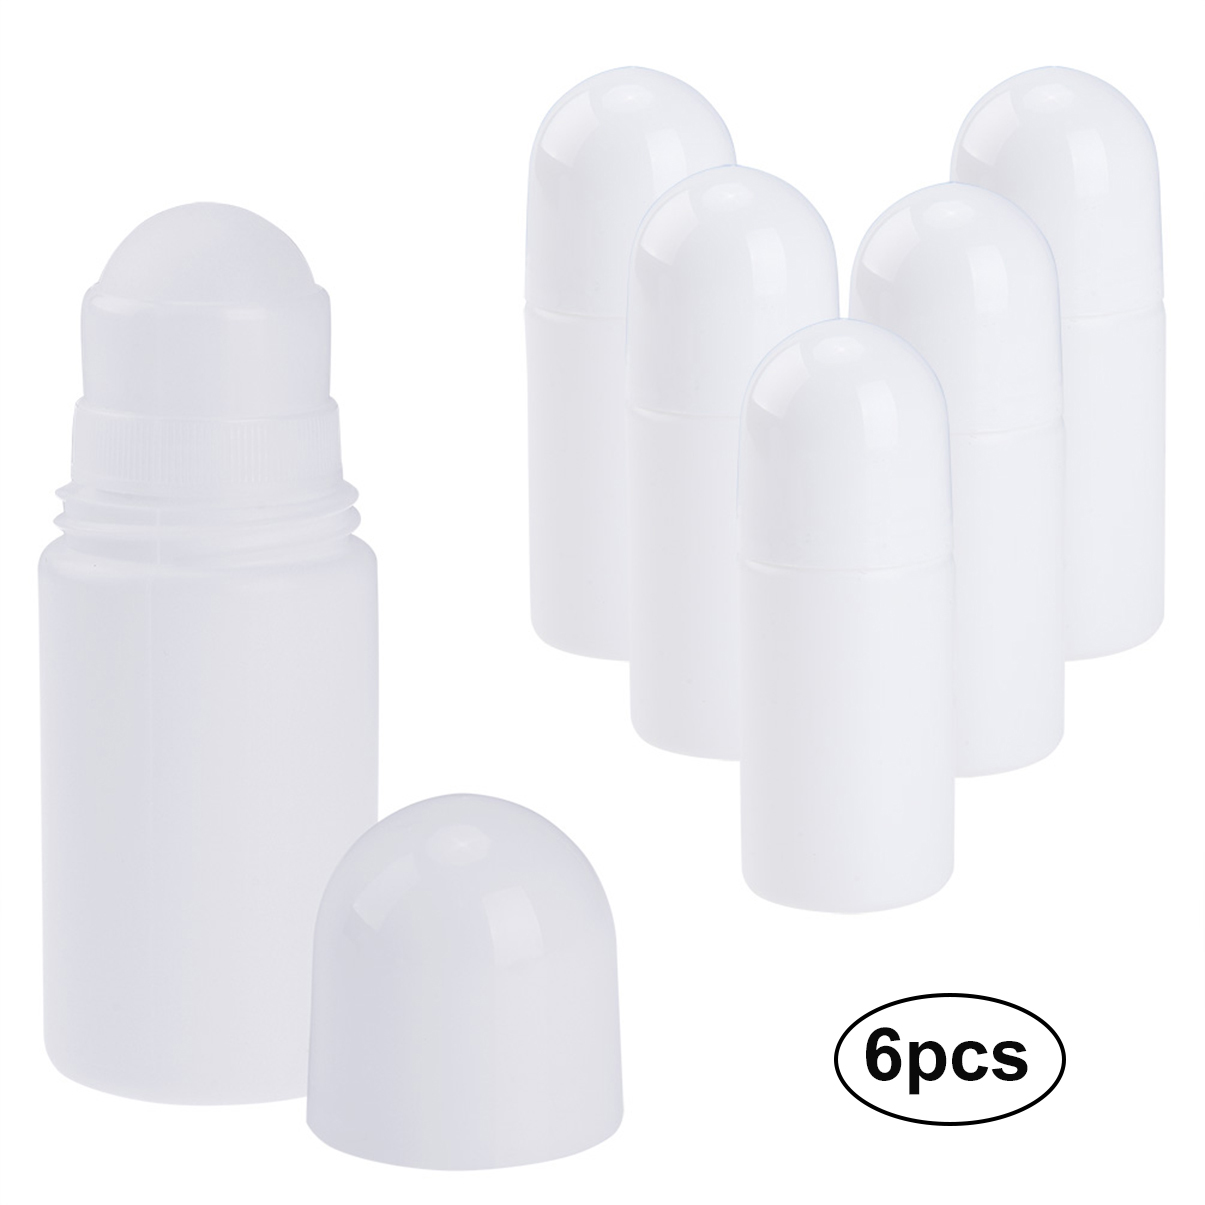 PrettySee 6PCS Empty Roll-on Bottle 50ML Recyclable Antiperspirant Roller Bottles Refillable Deodorant Container with RollerBall цена 2017